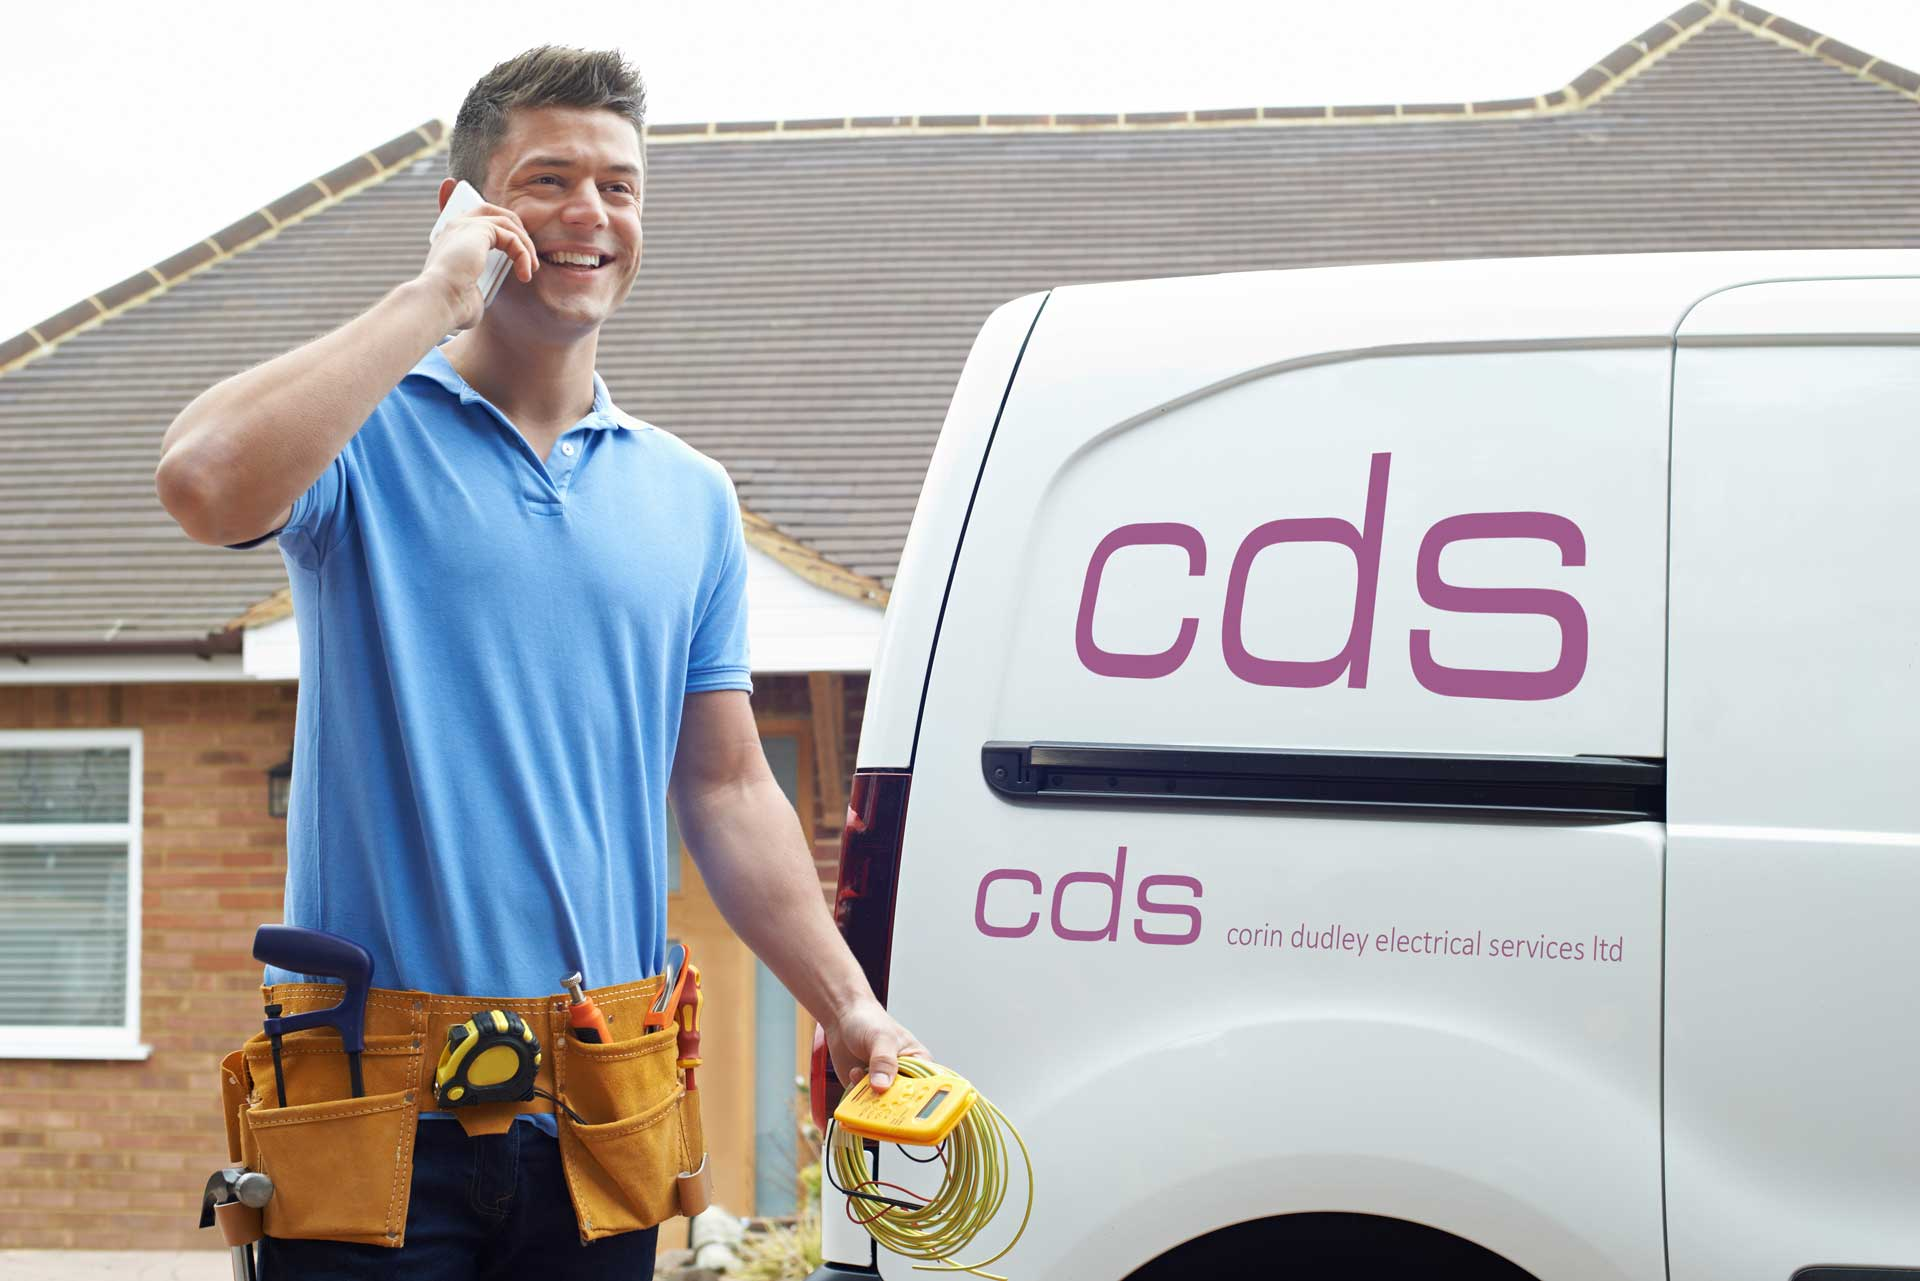 A CDS Electrical engineer and his van